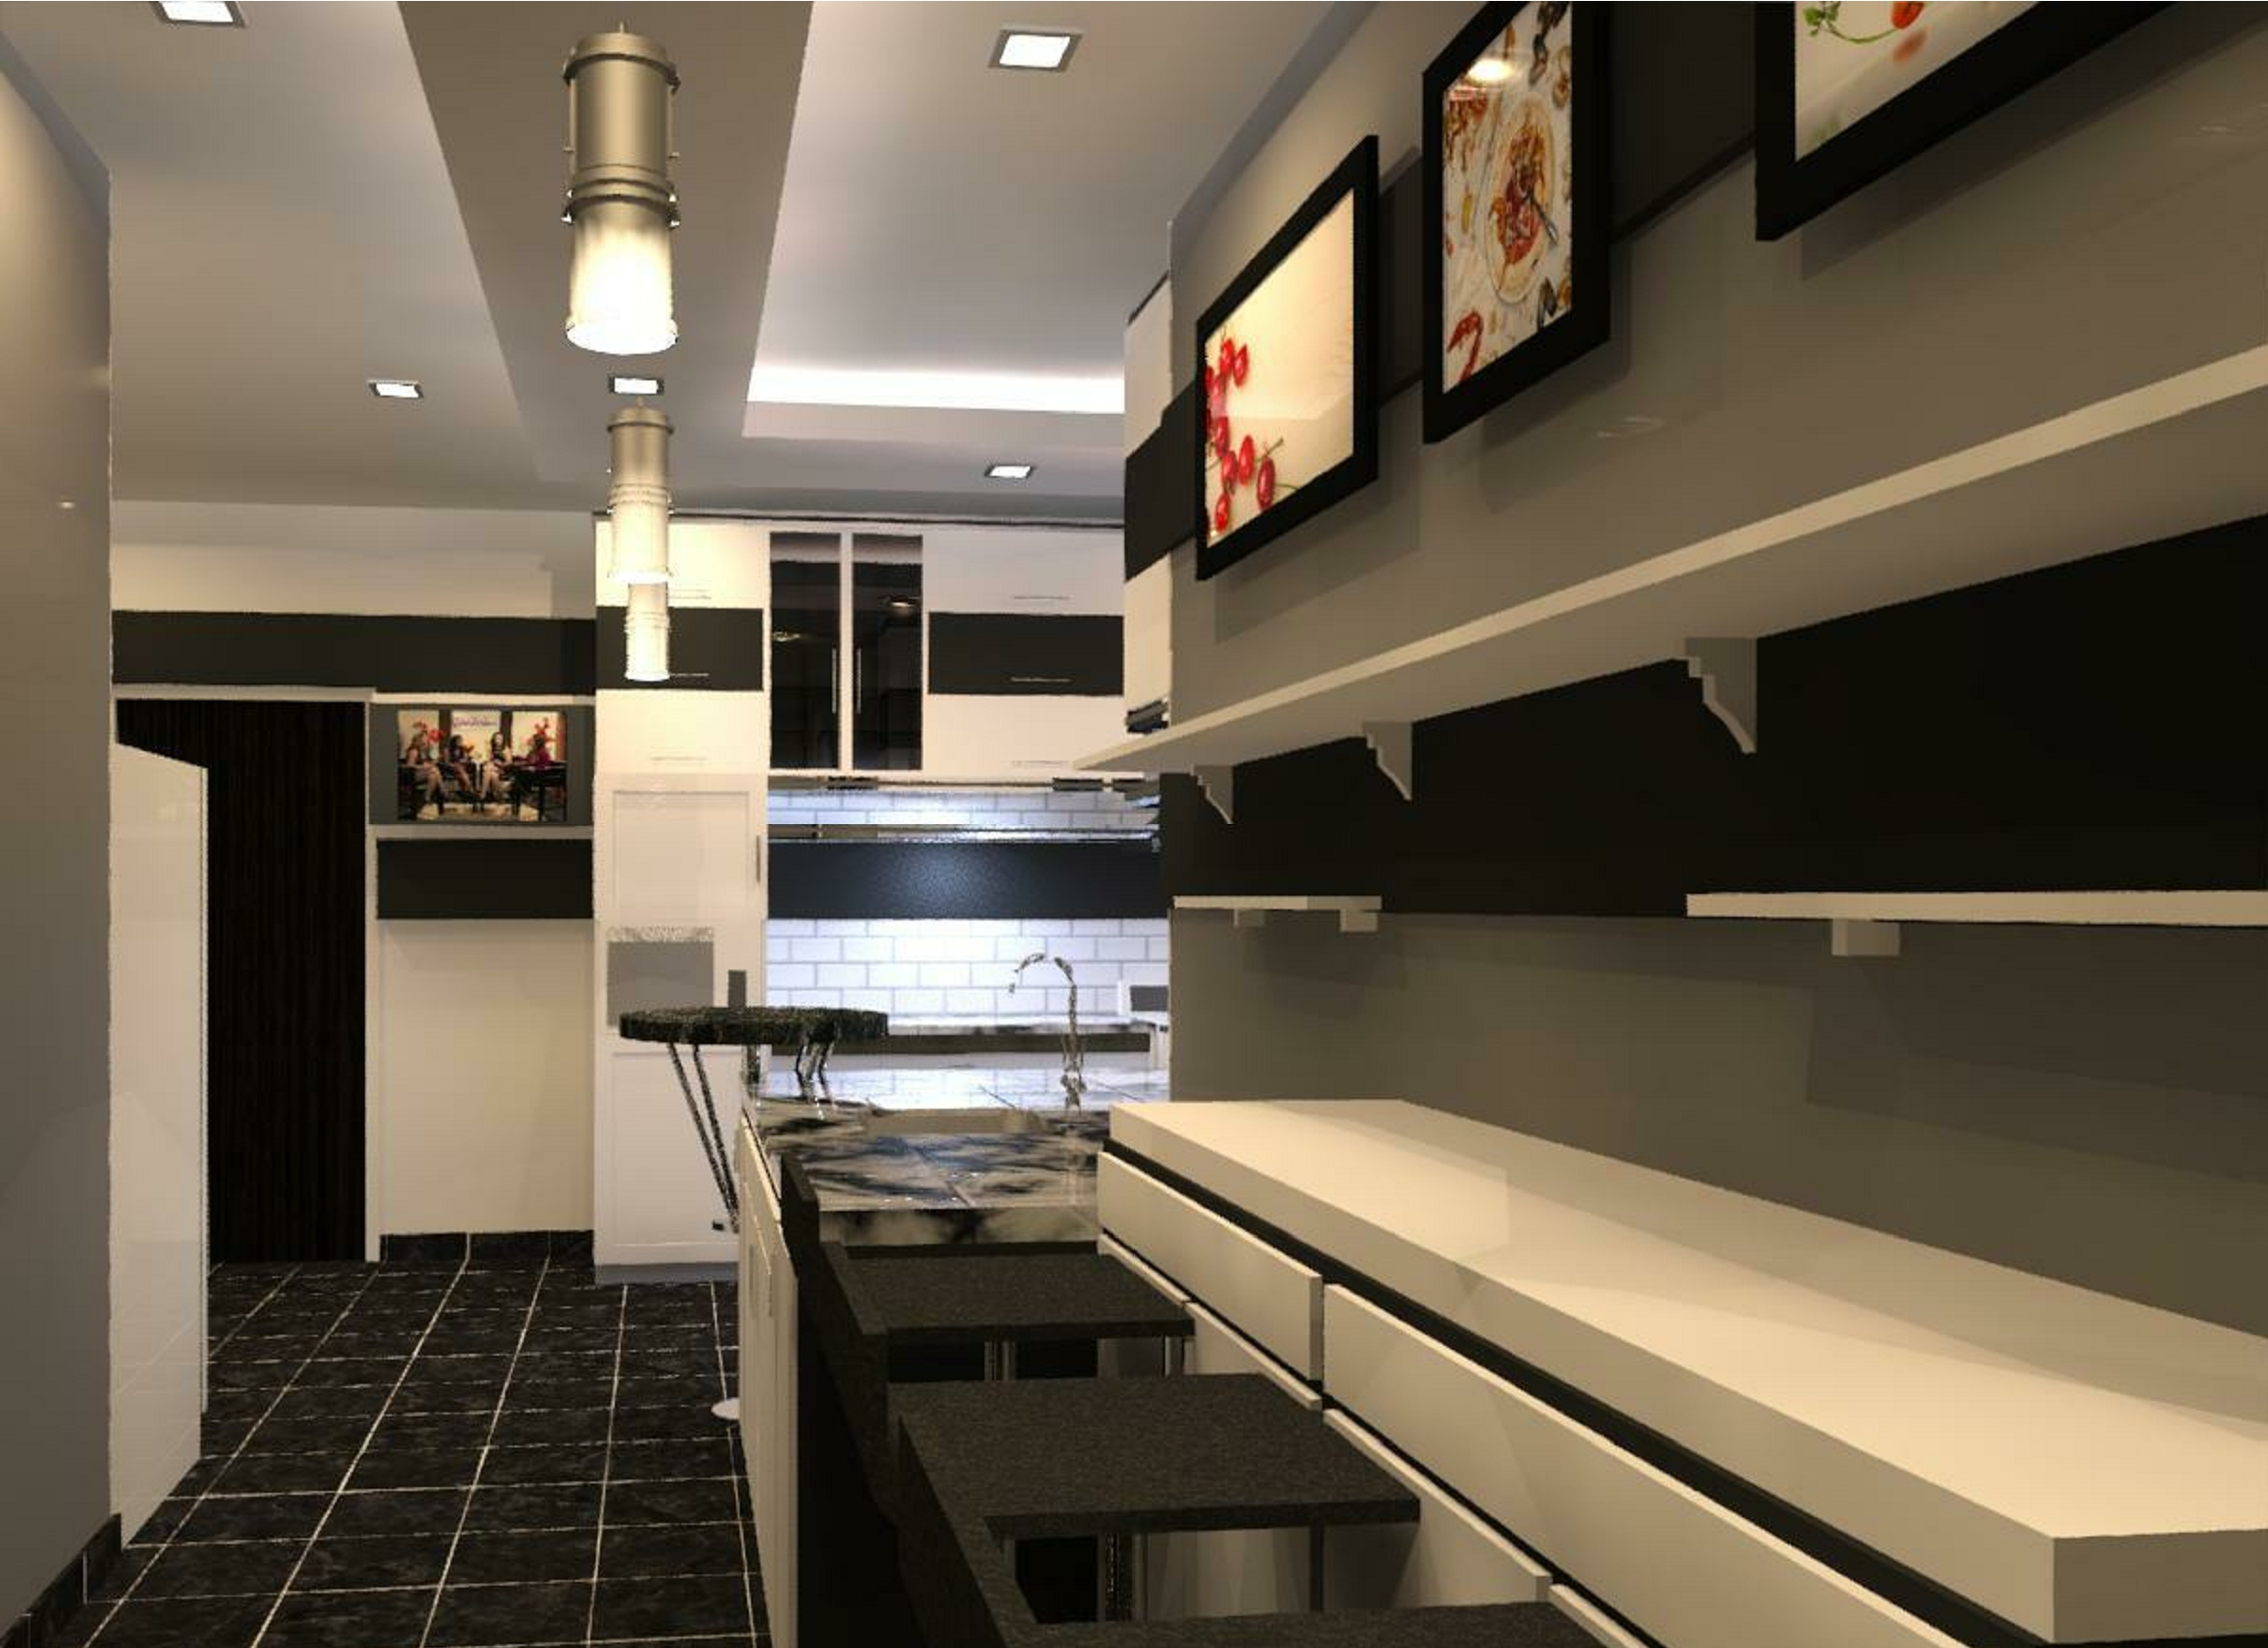 GET YOUR 3D KITCHEN AND DINNING DESIGN BY ANTIQUES AND DECOR